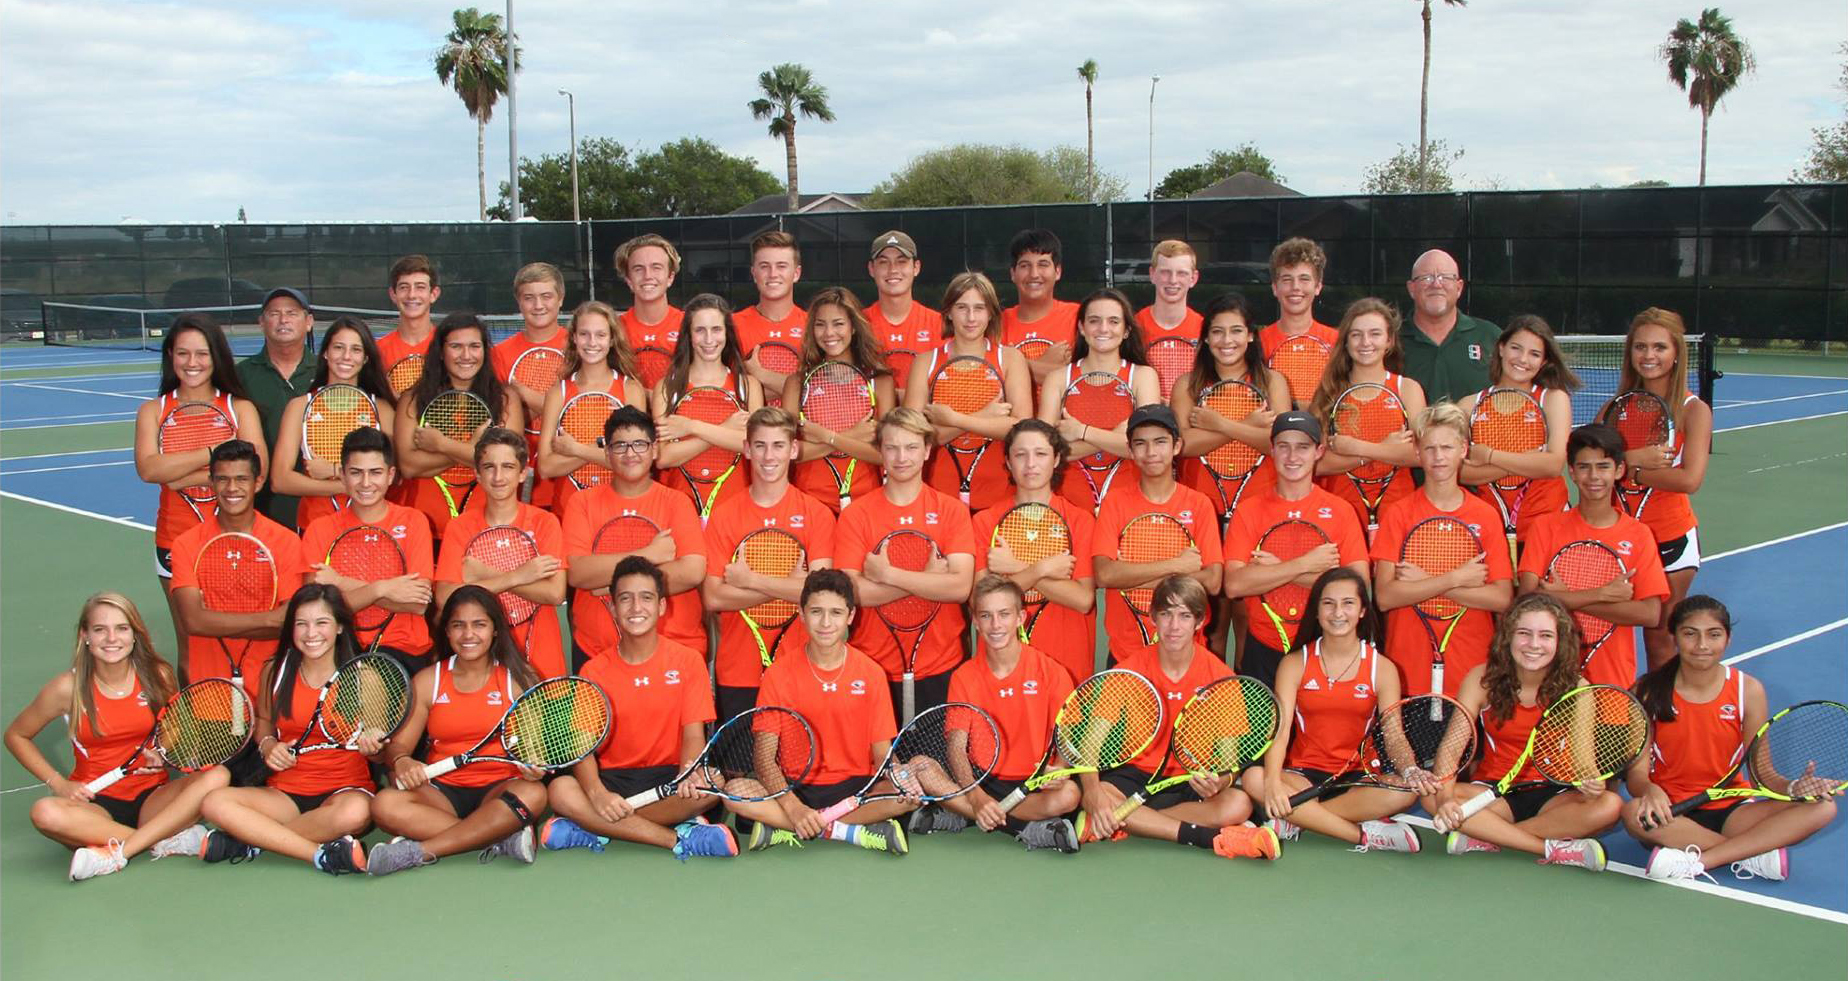 Harlingen South Tennis advancing to Regional Semifinals